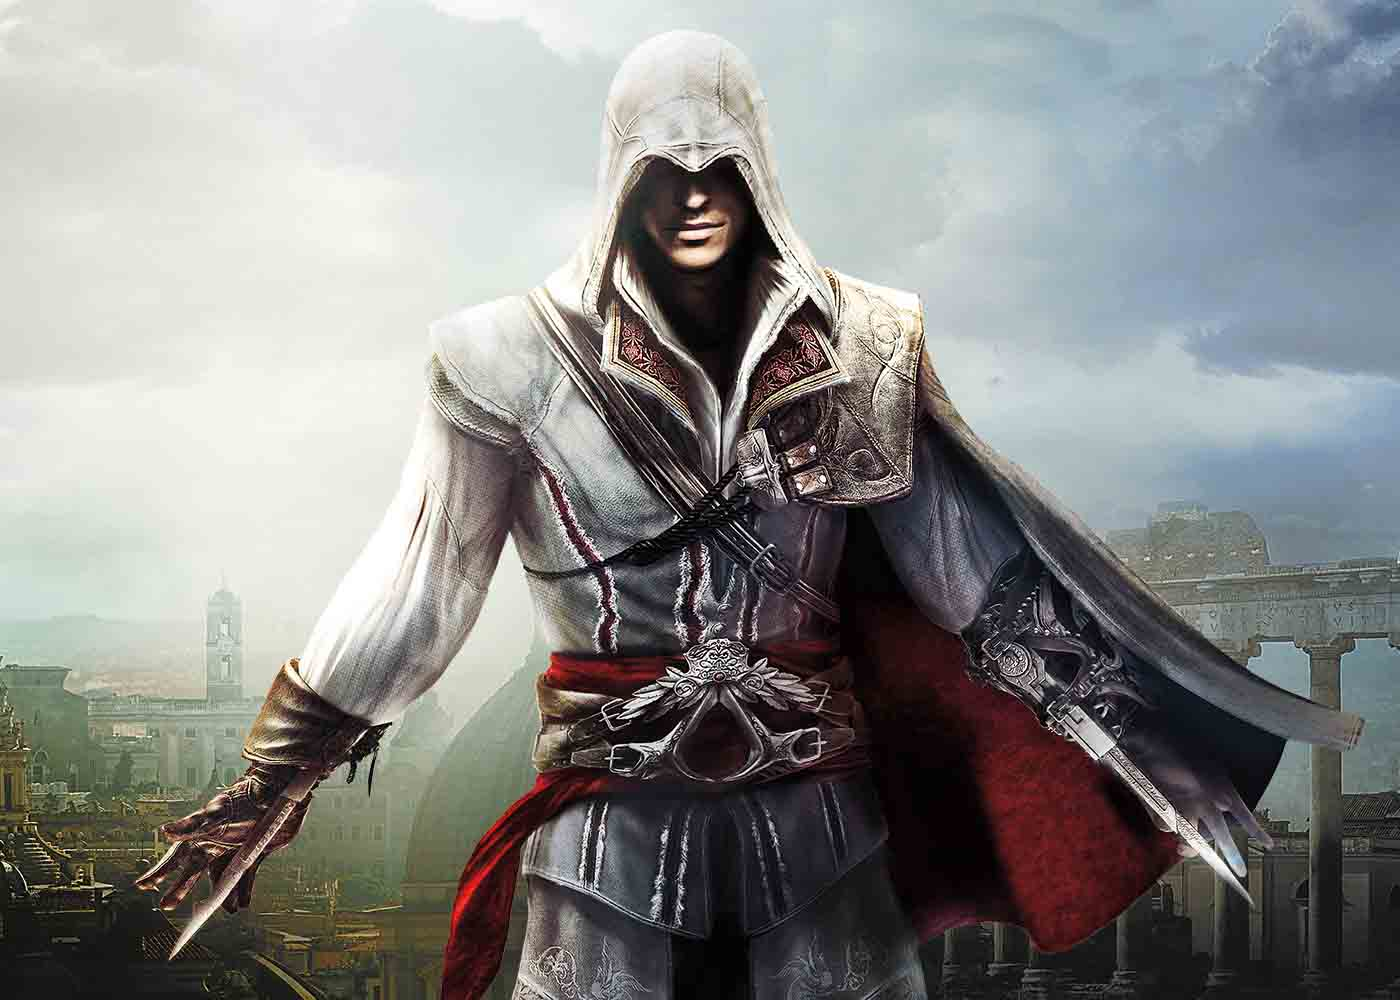 Assassin's Creed Animated Series in the Works from Adi Shankar